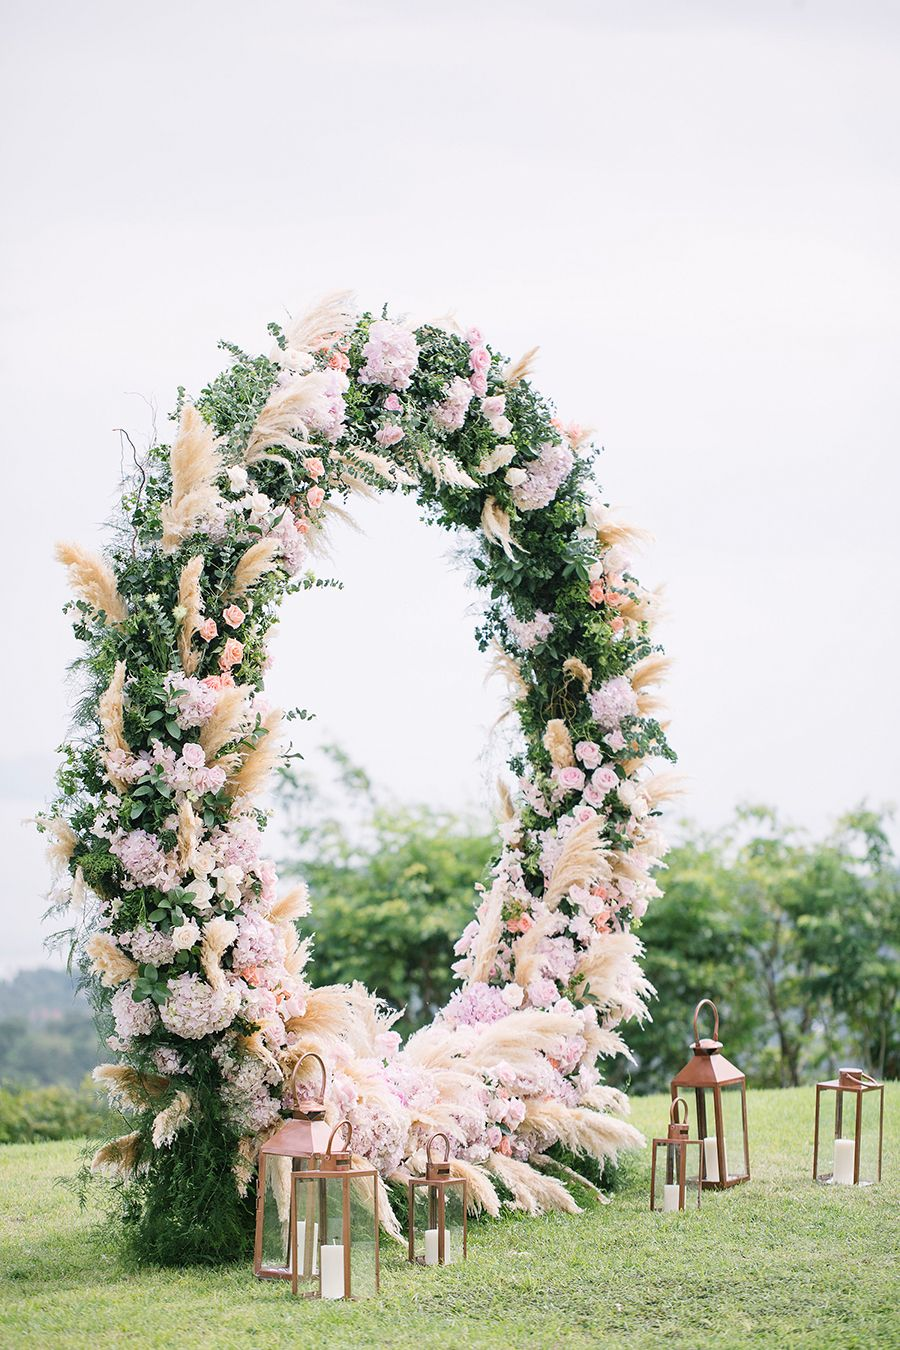 Circular Floral Arches Why Your Wedding Ceremony Needs This New Trend Wedding Arch Flowers Wedding Arch Floral Arch